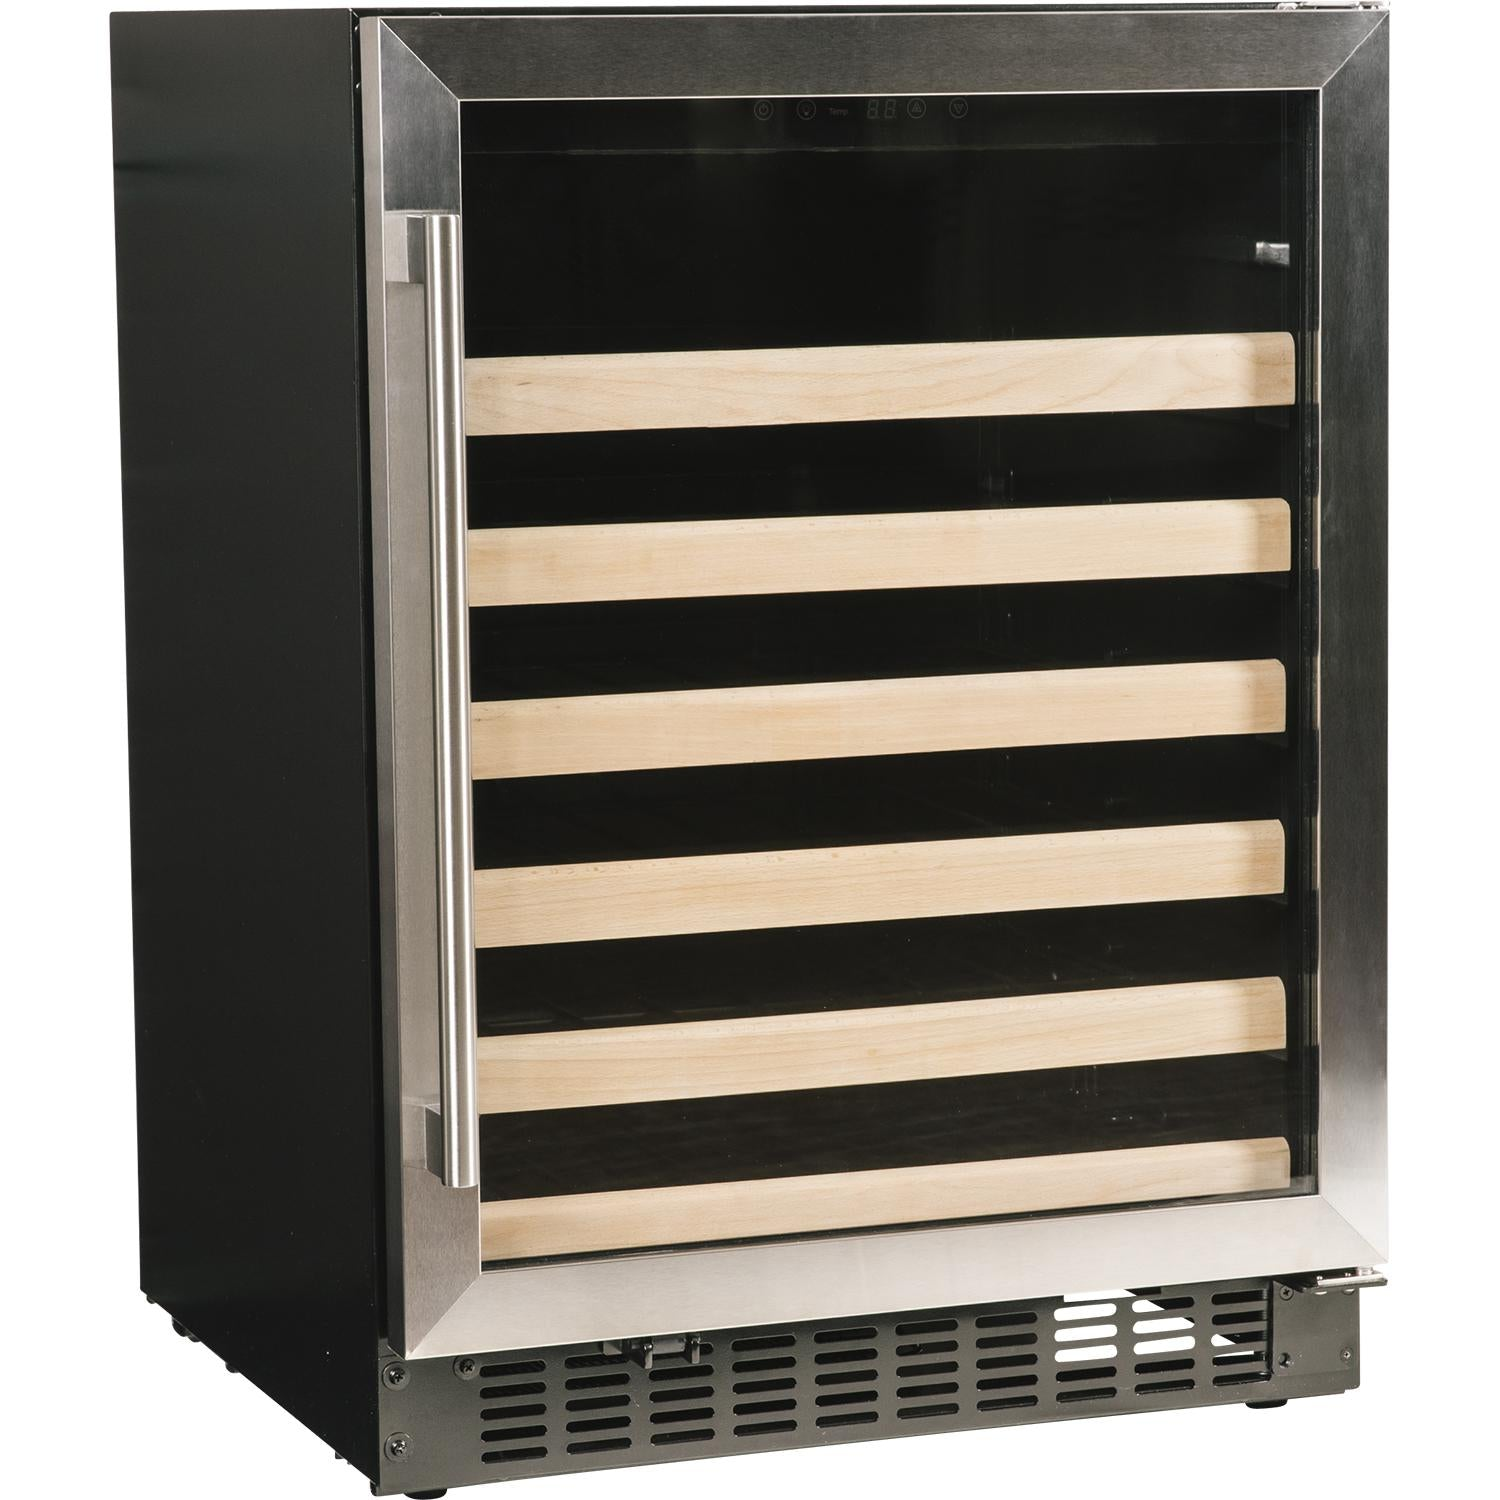 "Azure 24"" 48-Bottle Stainless Steel Single Zone Wine Cooler A124WC-S - Swings and More"